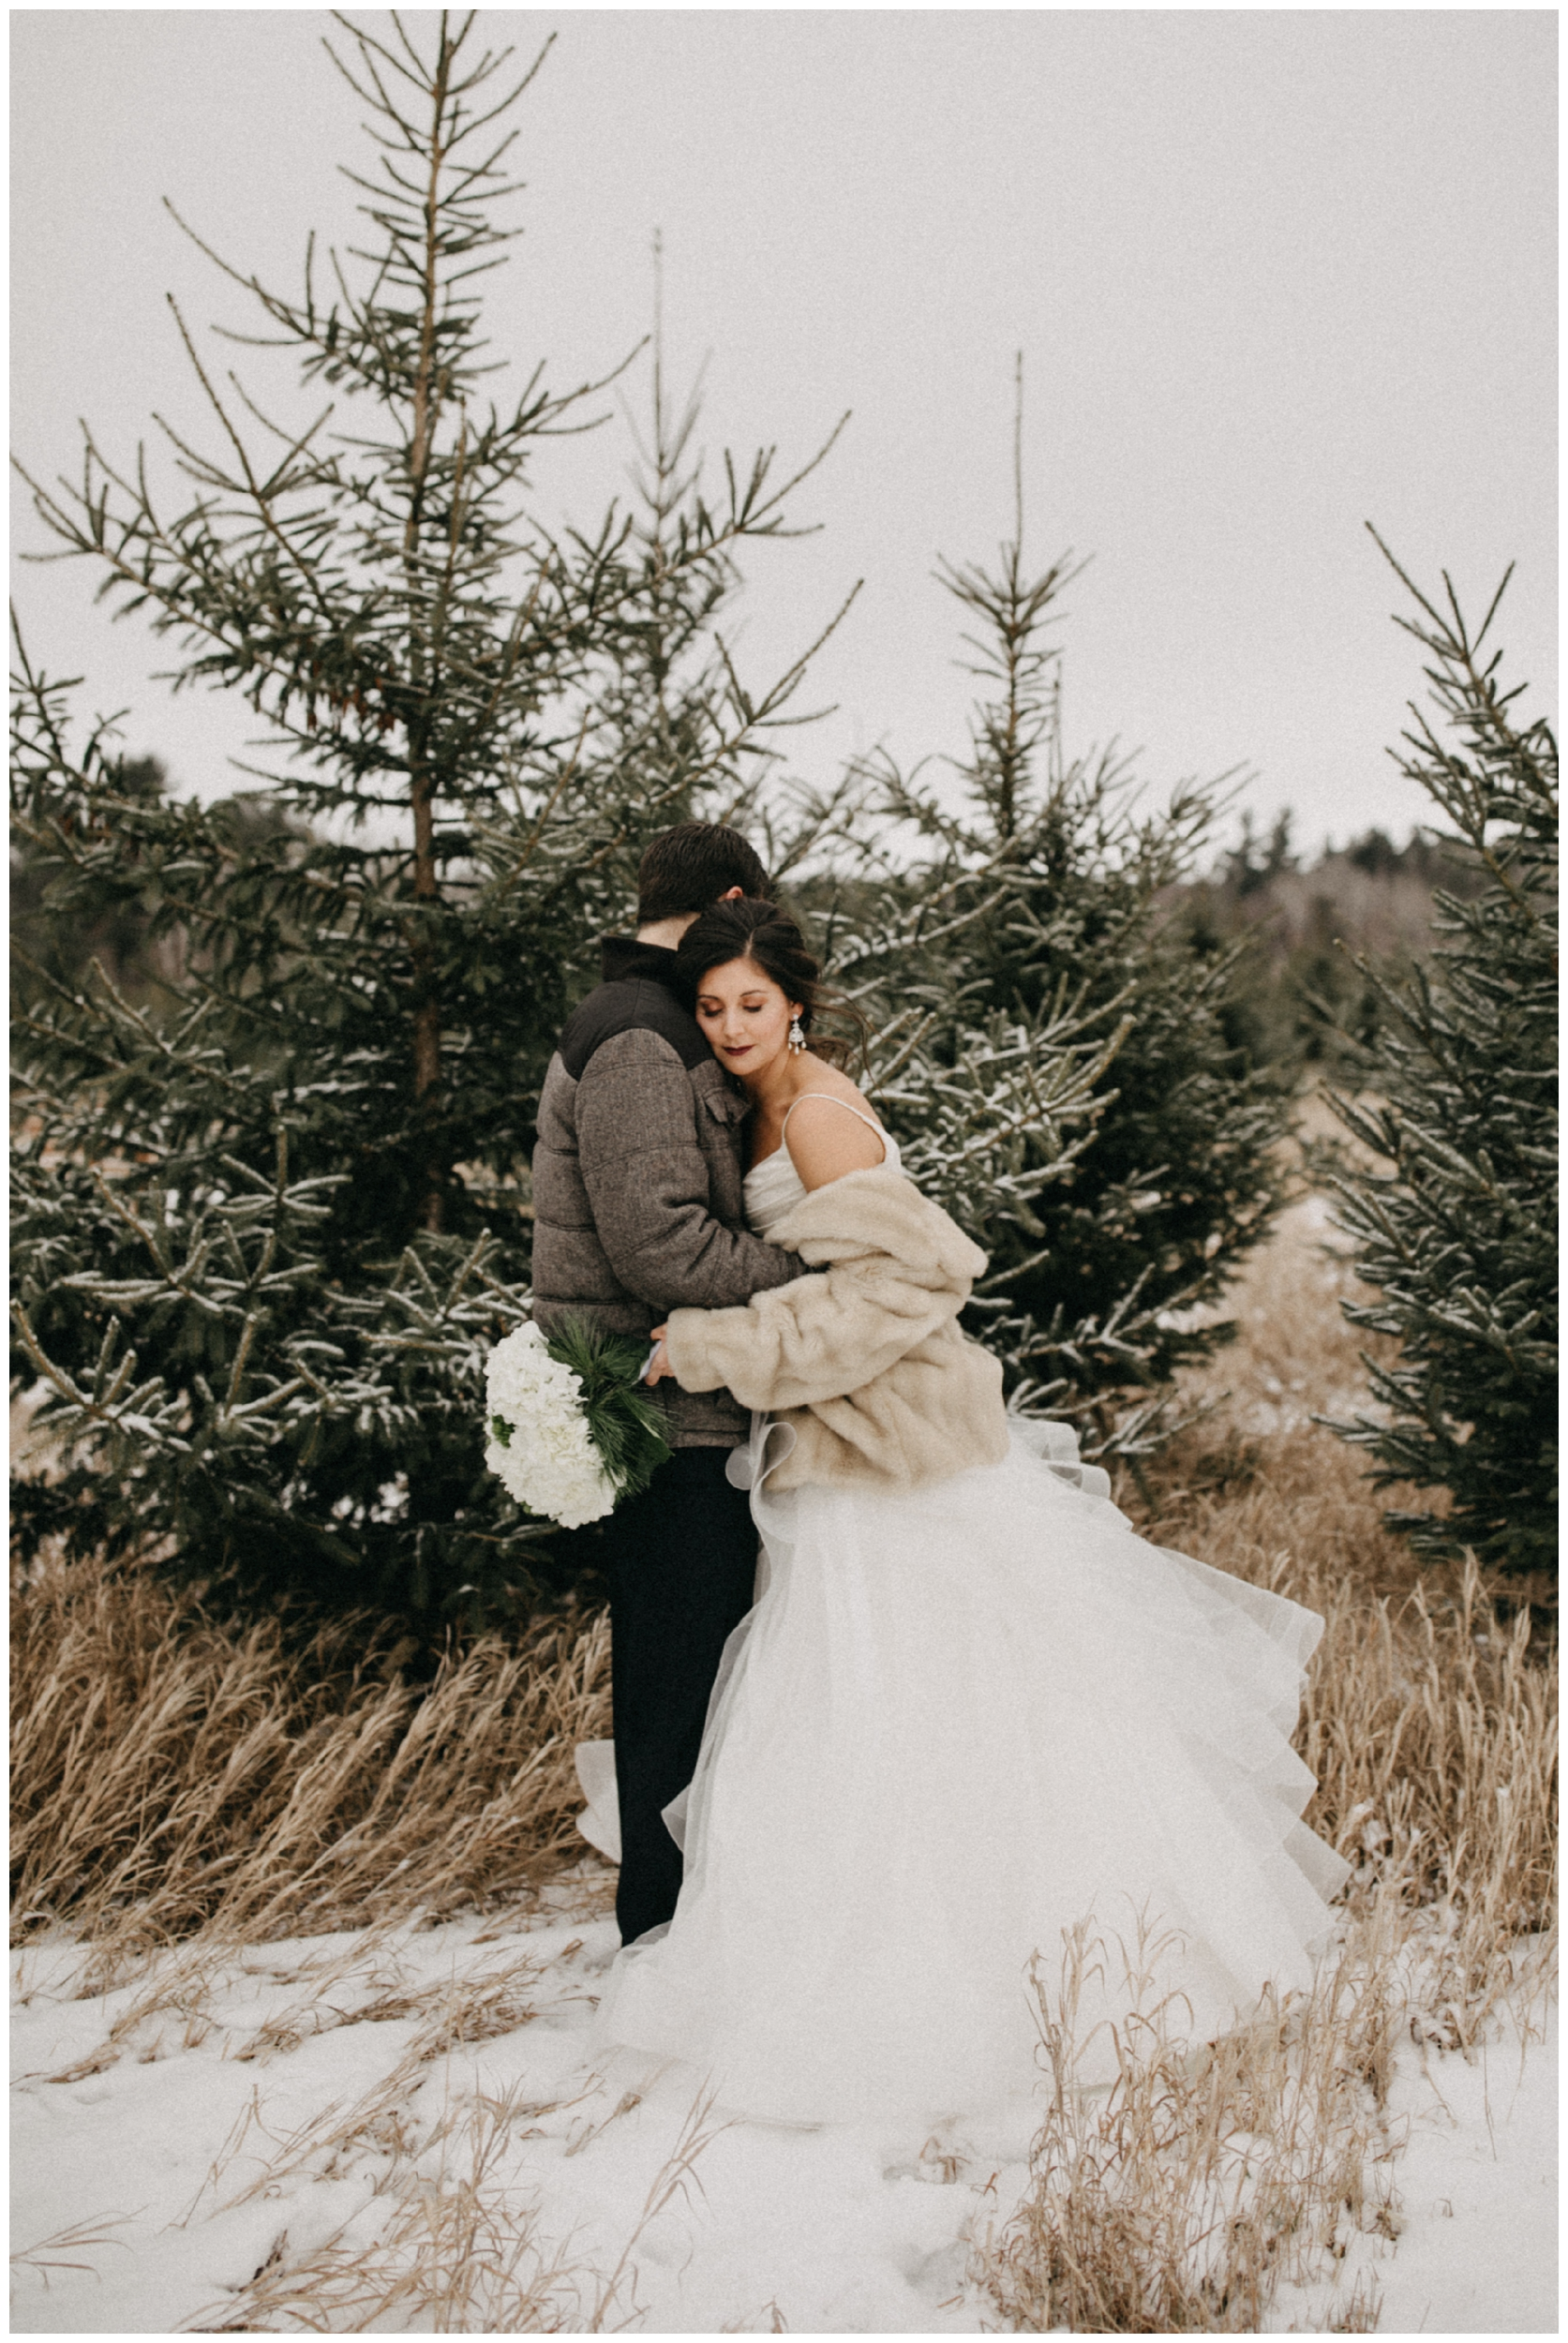 Whimsical winter wedding in Crosslake Minnesota photographed by Britt DeZeeuw